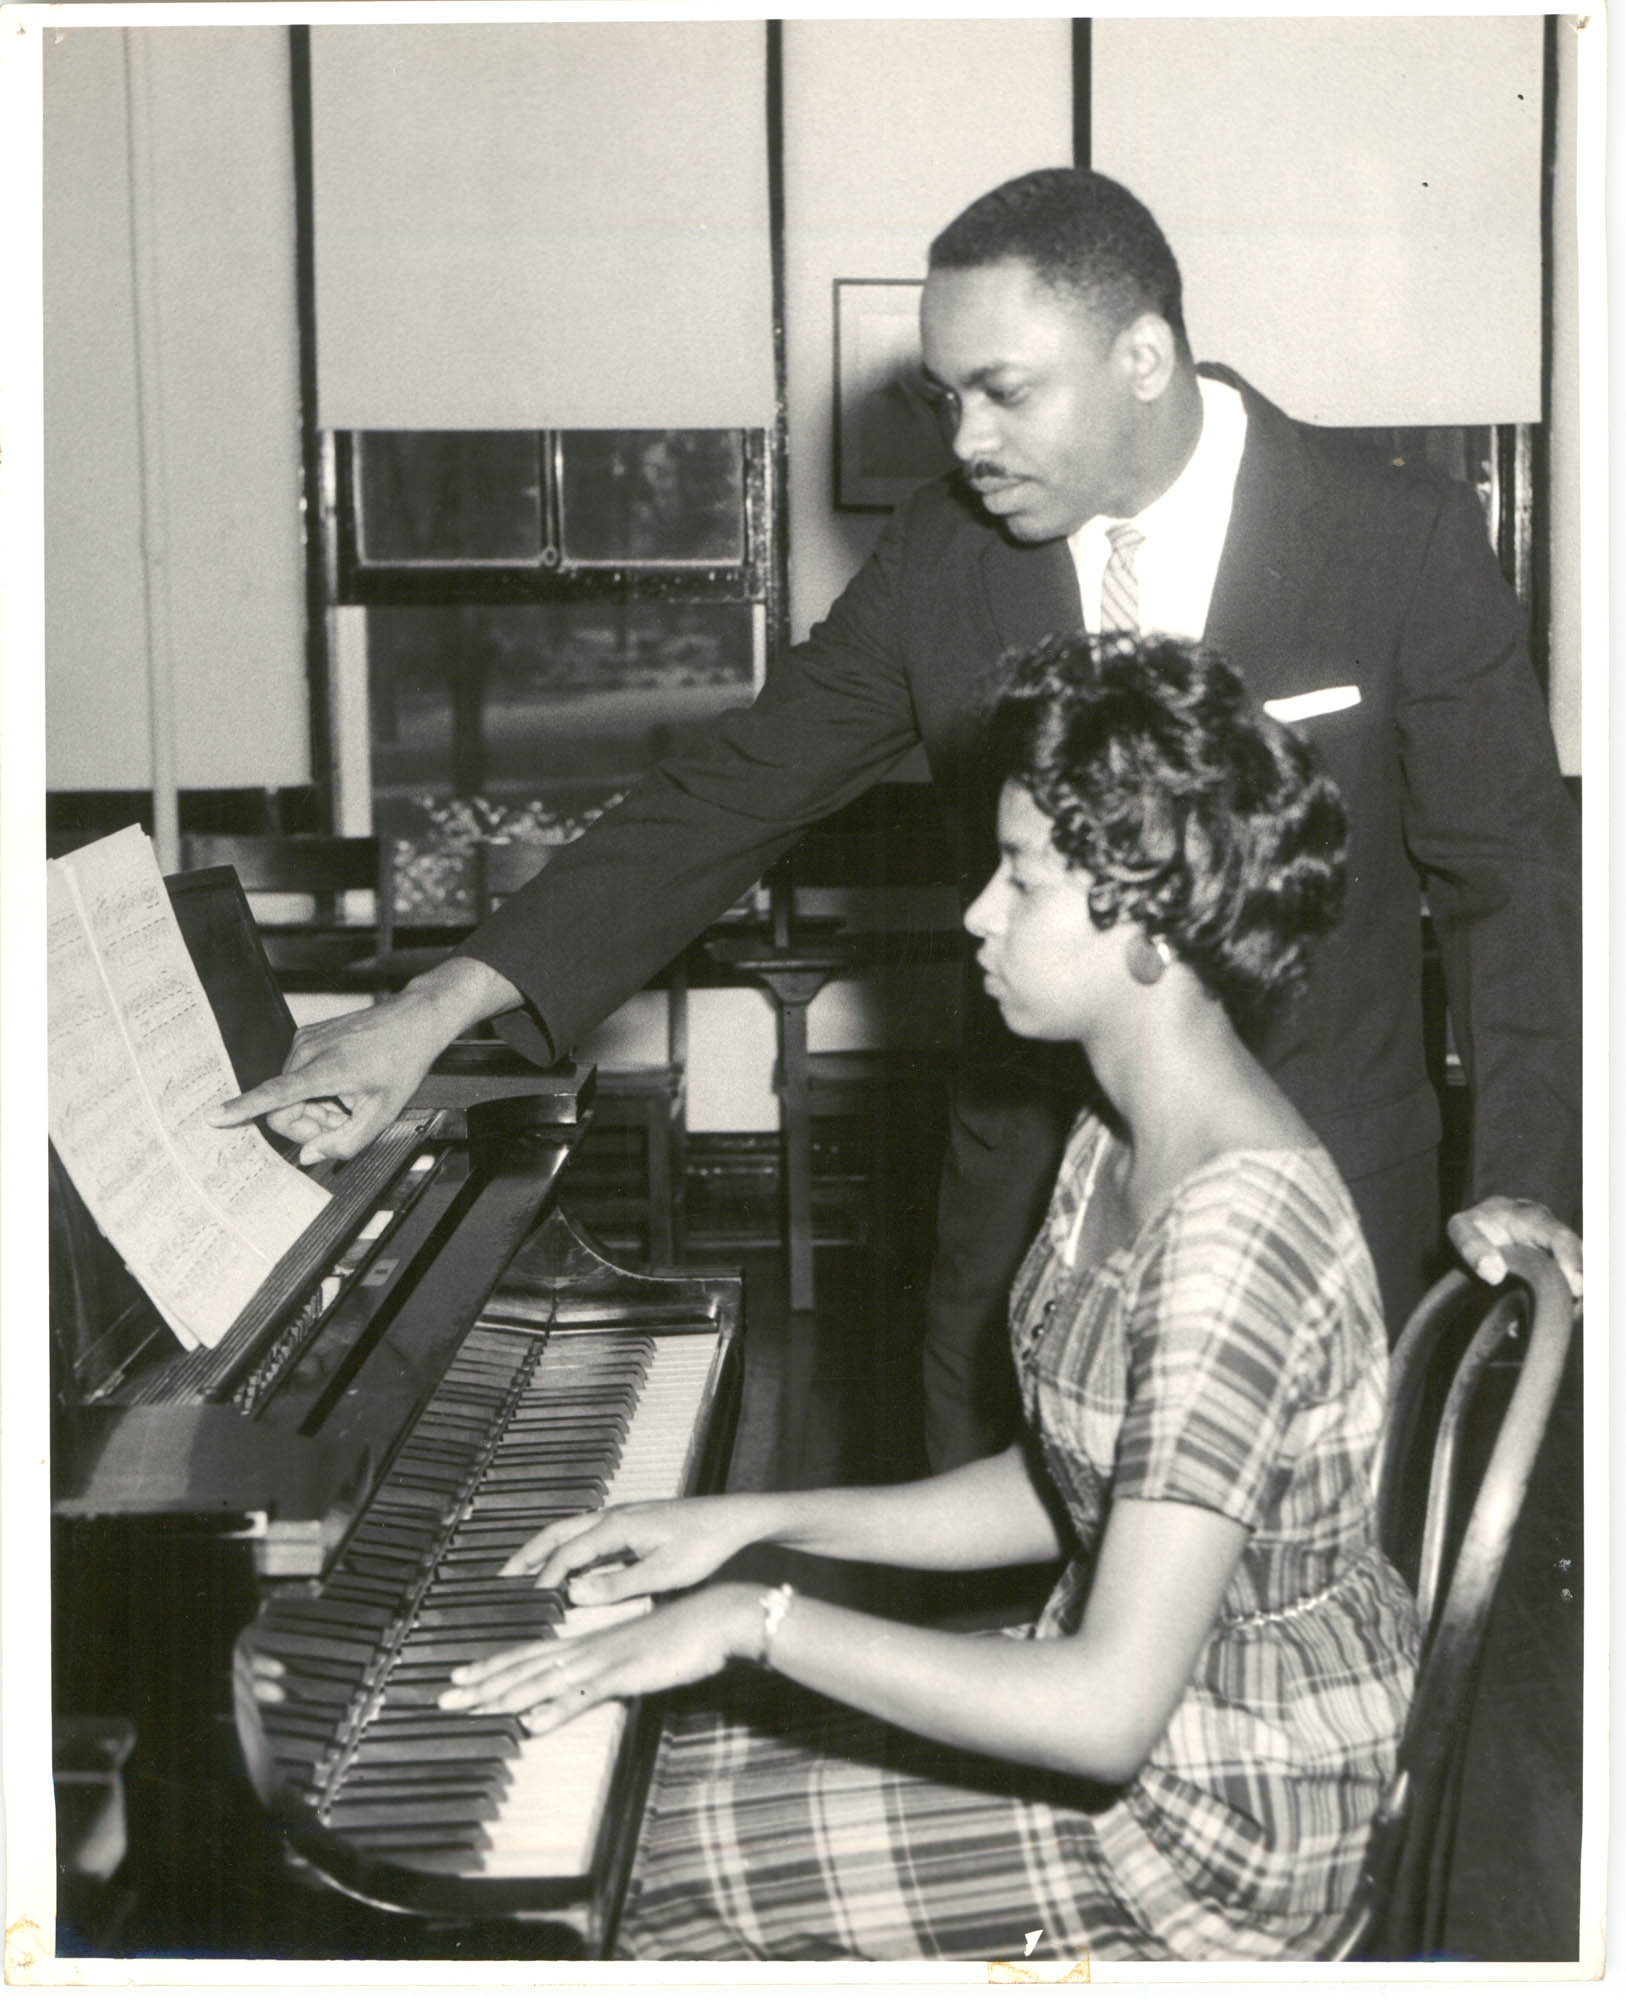 Photograph of a Piano Lesson at Talladega College